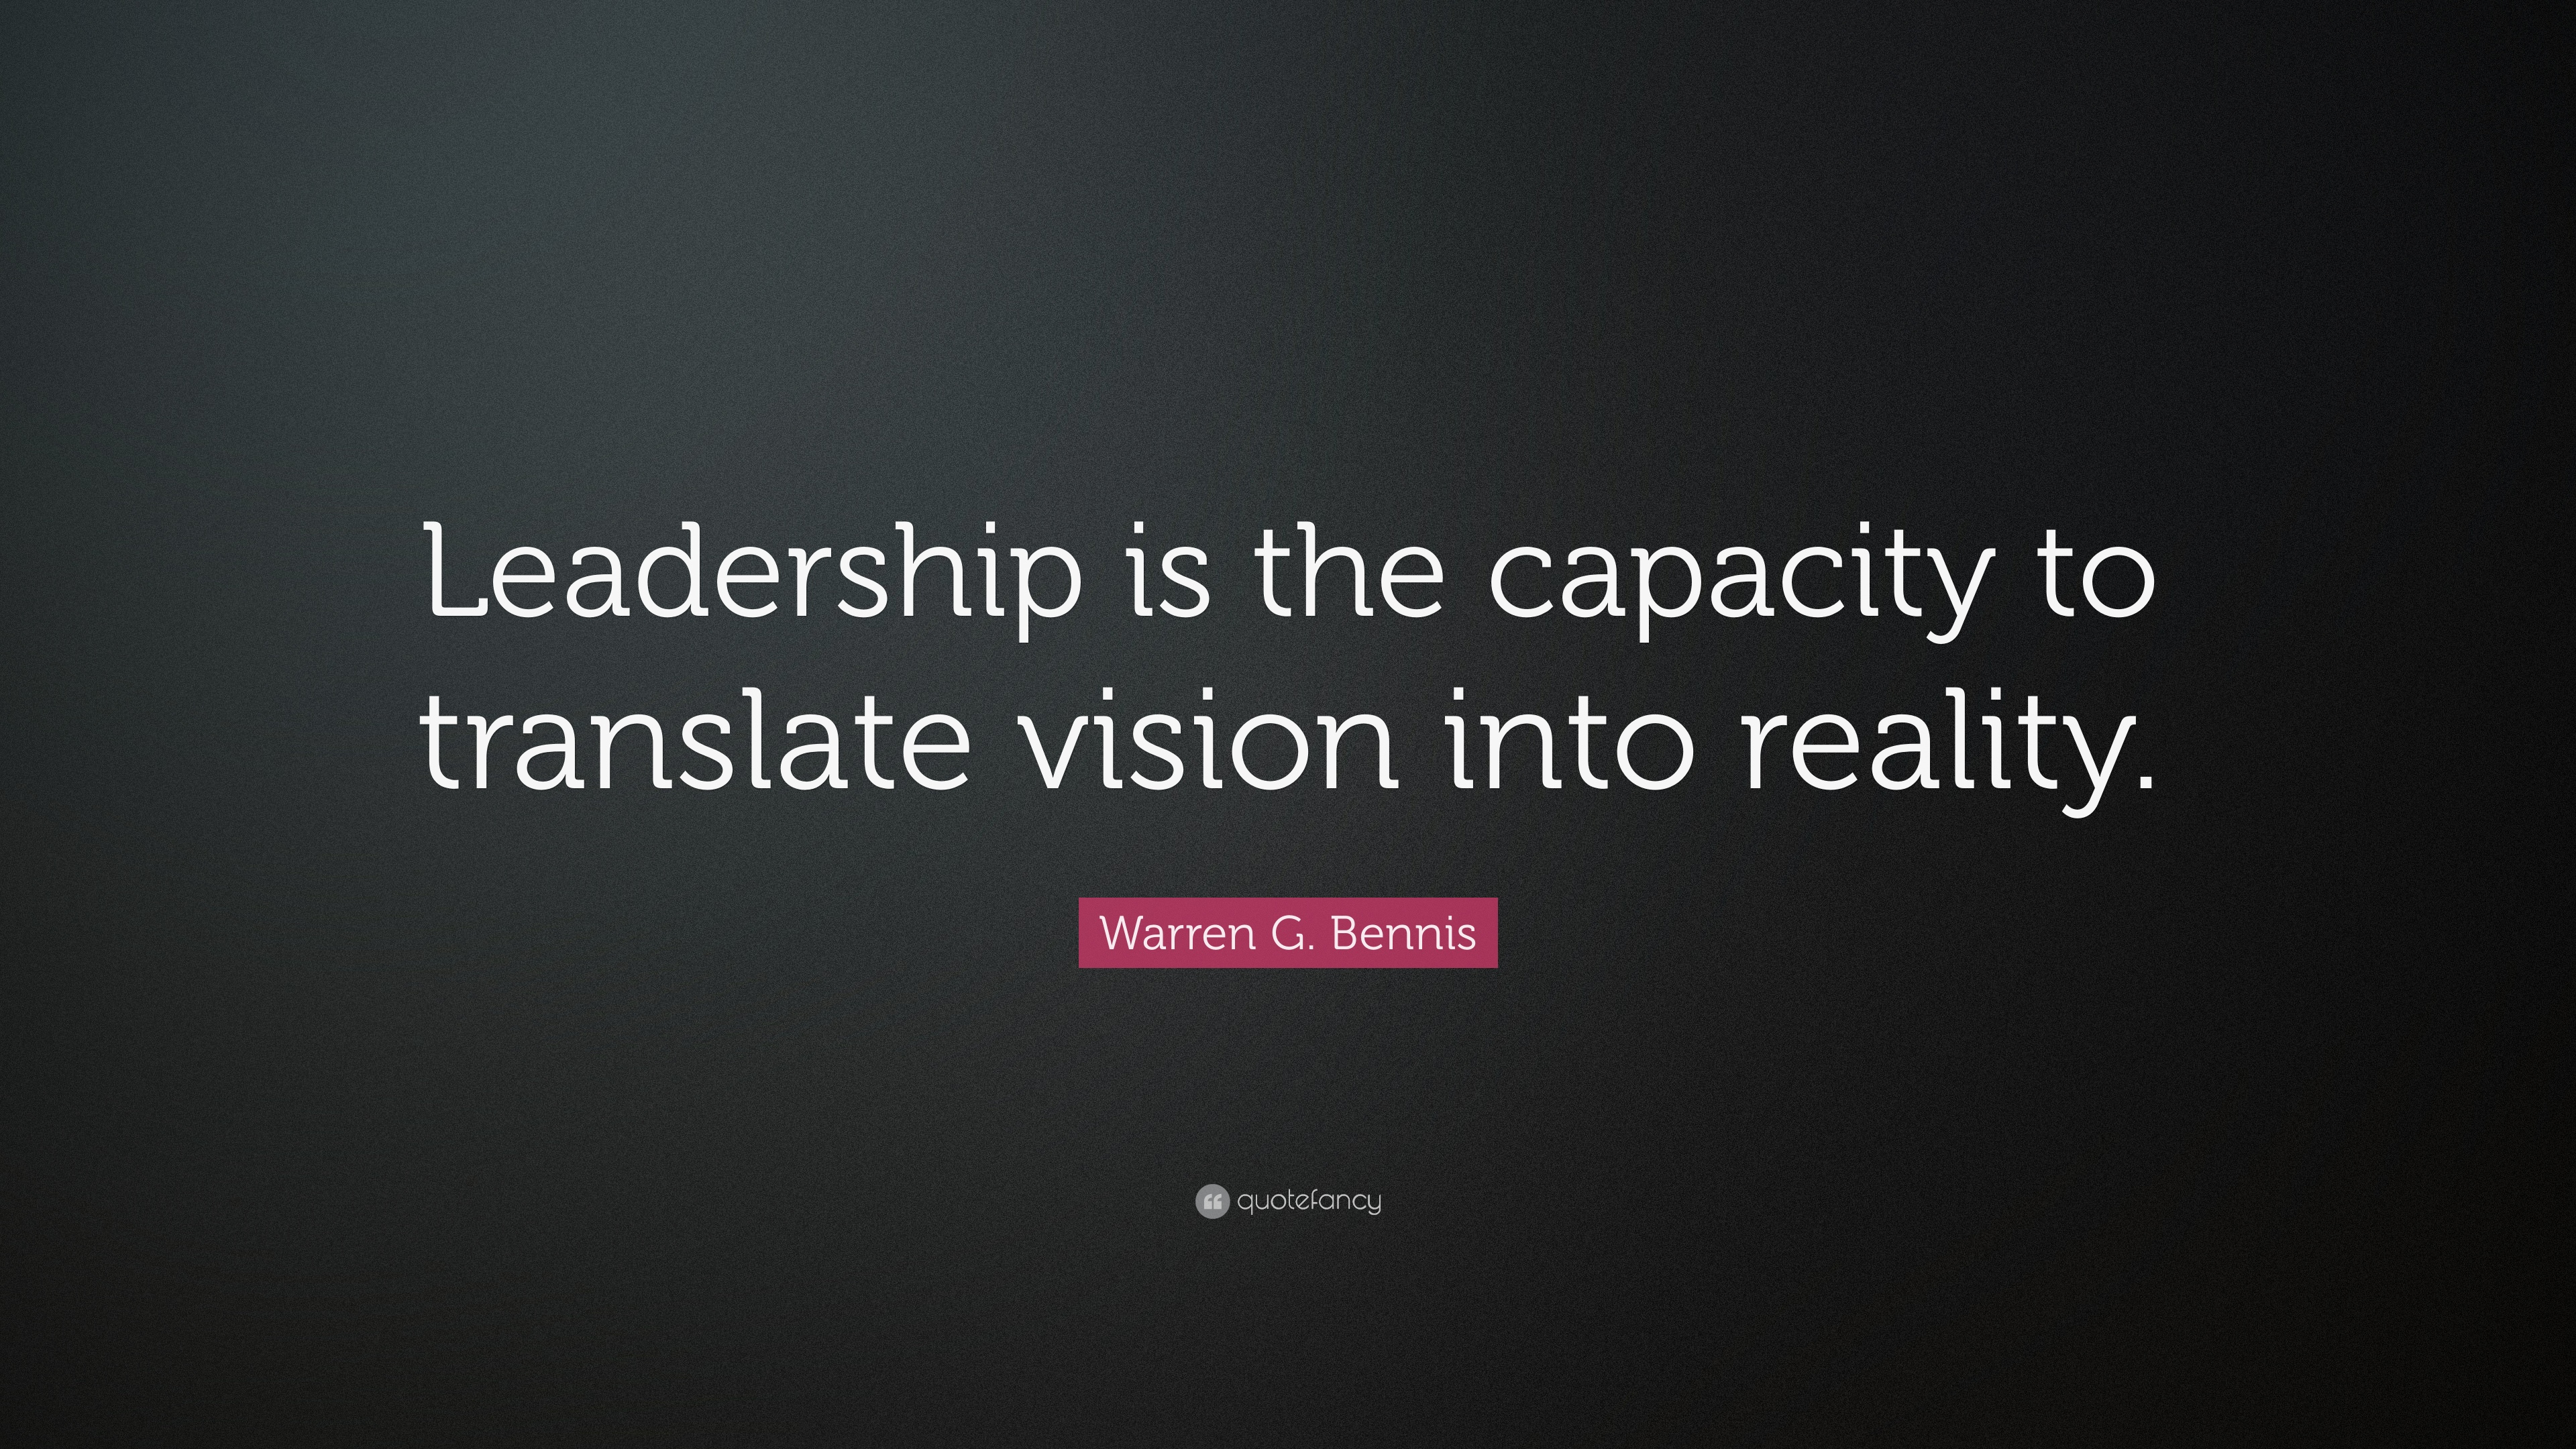 Warren G Bennis Quote Leadership Is The Capacity To Translate